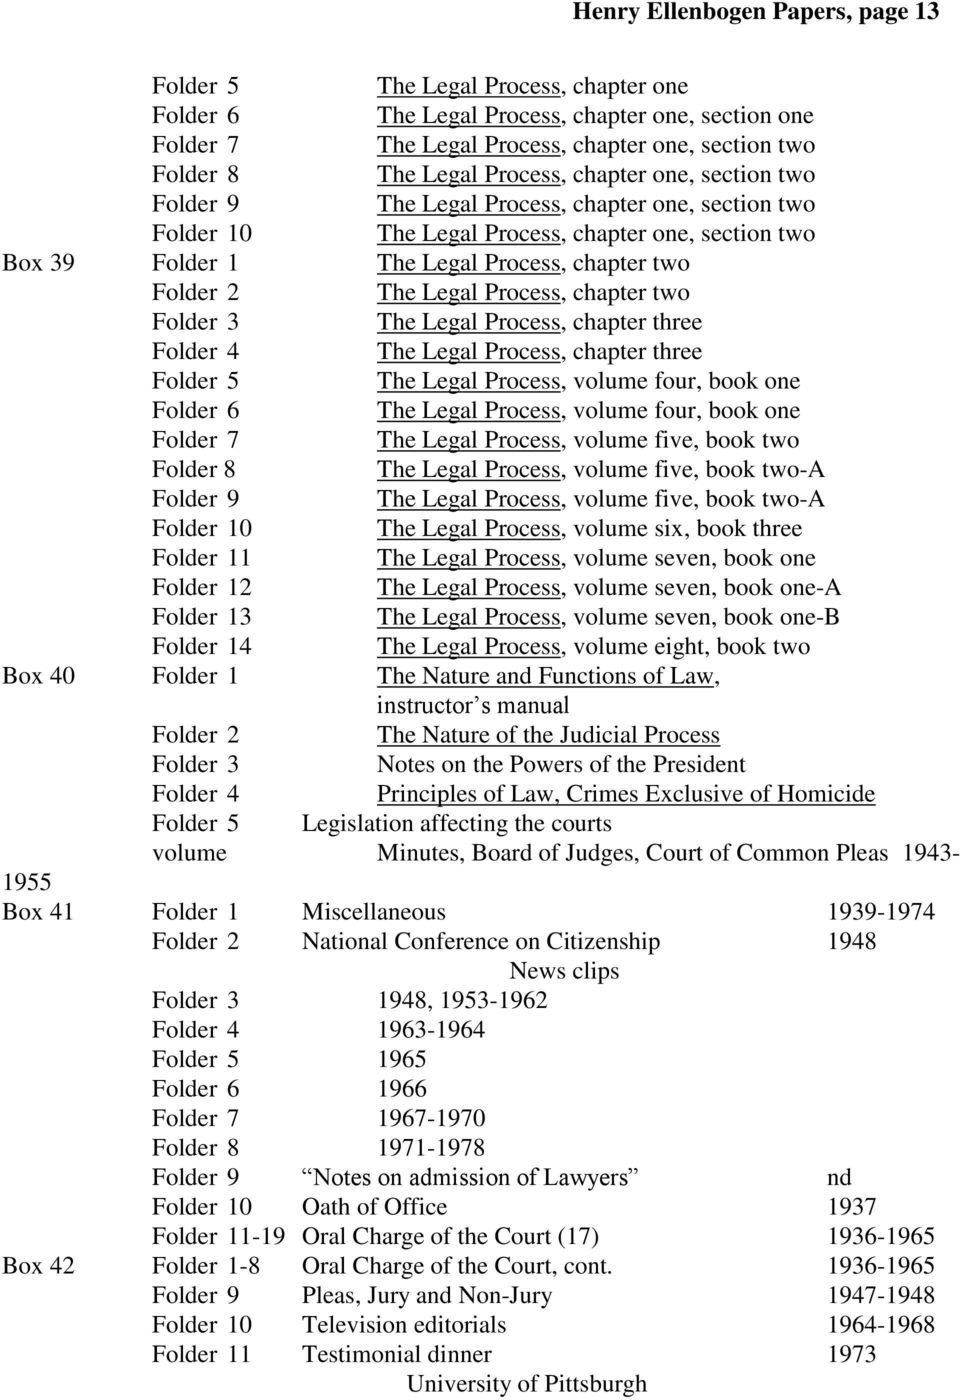 The Legal Process, chapter two Folder 3 The Legal Process, chapter three Folder 4 The Legal Process, chapter three Folder 5 The Legal Process, volume four, book one Folder 6 The Legal Process, volume